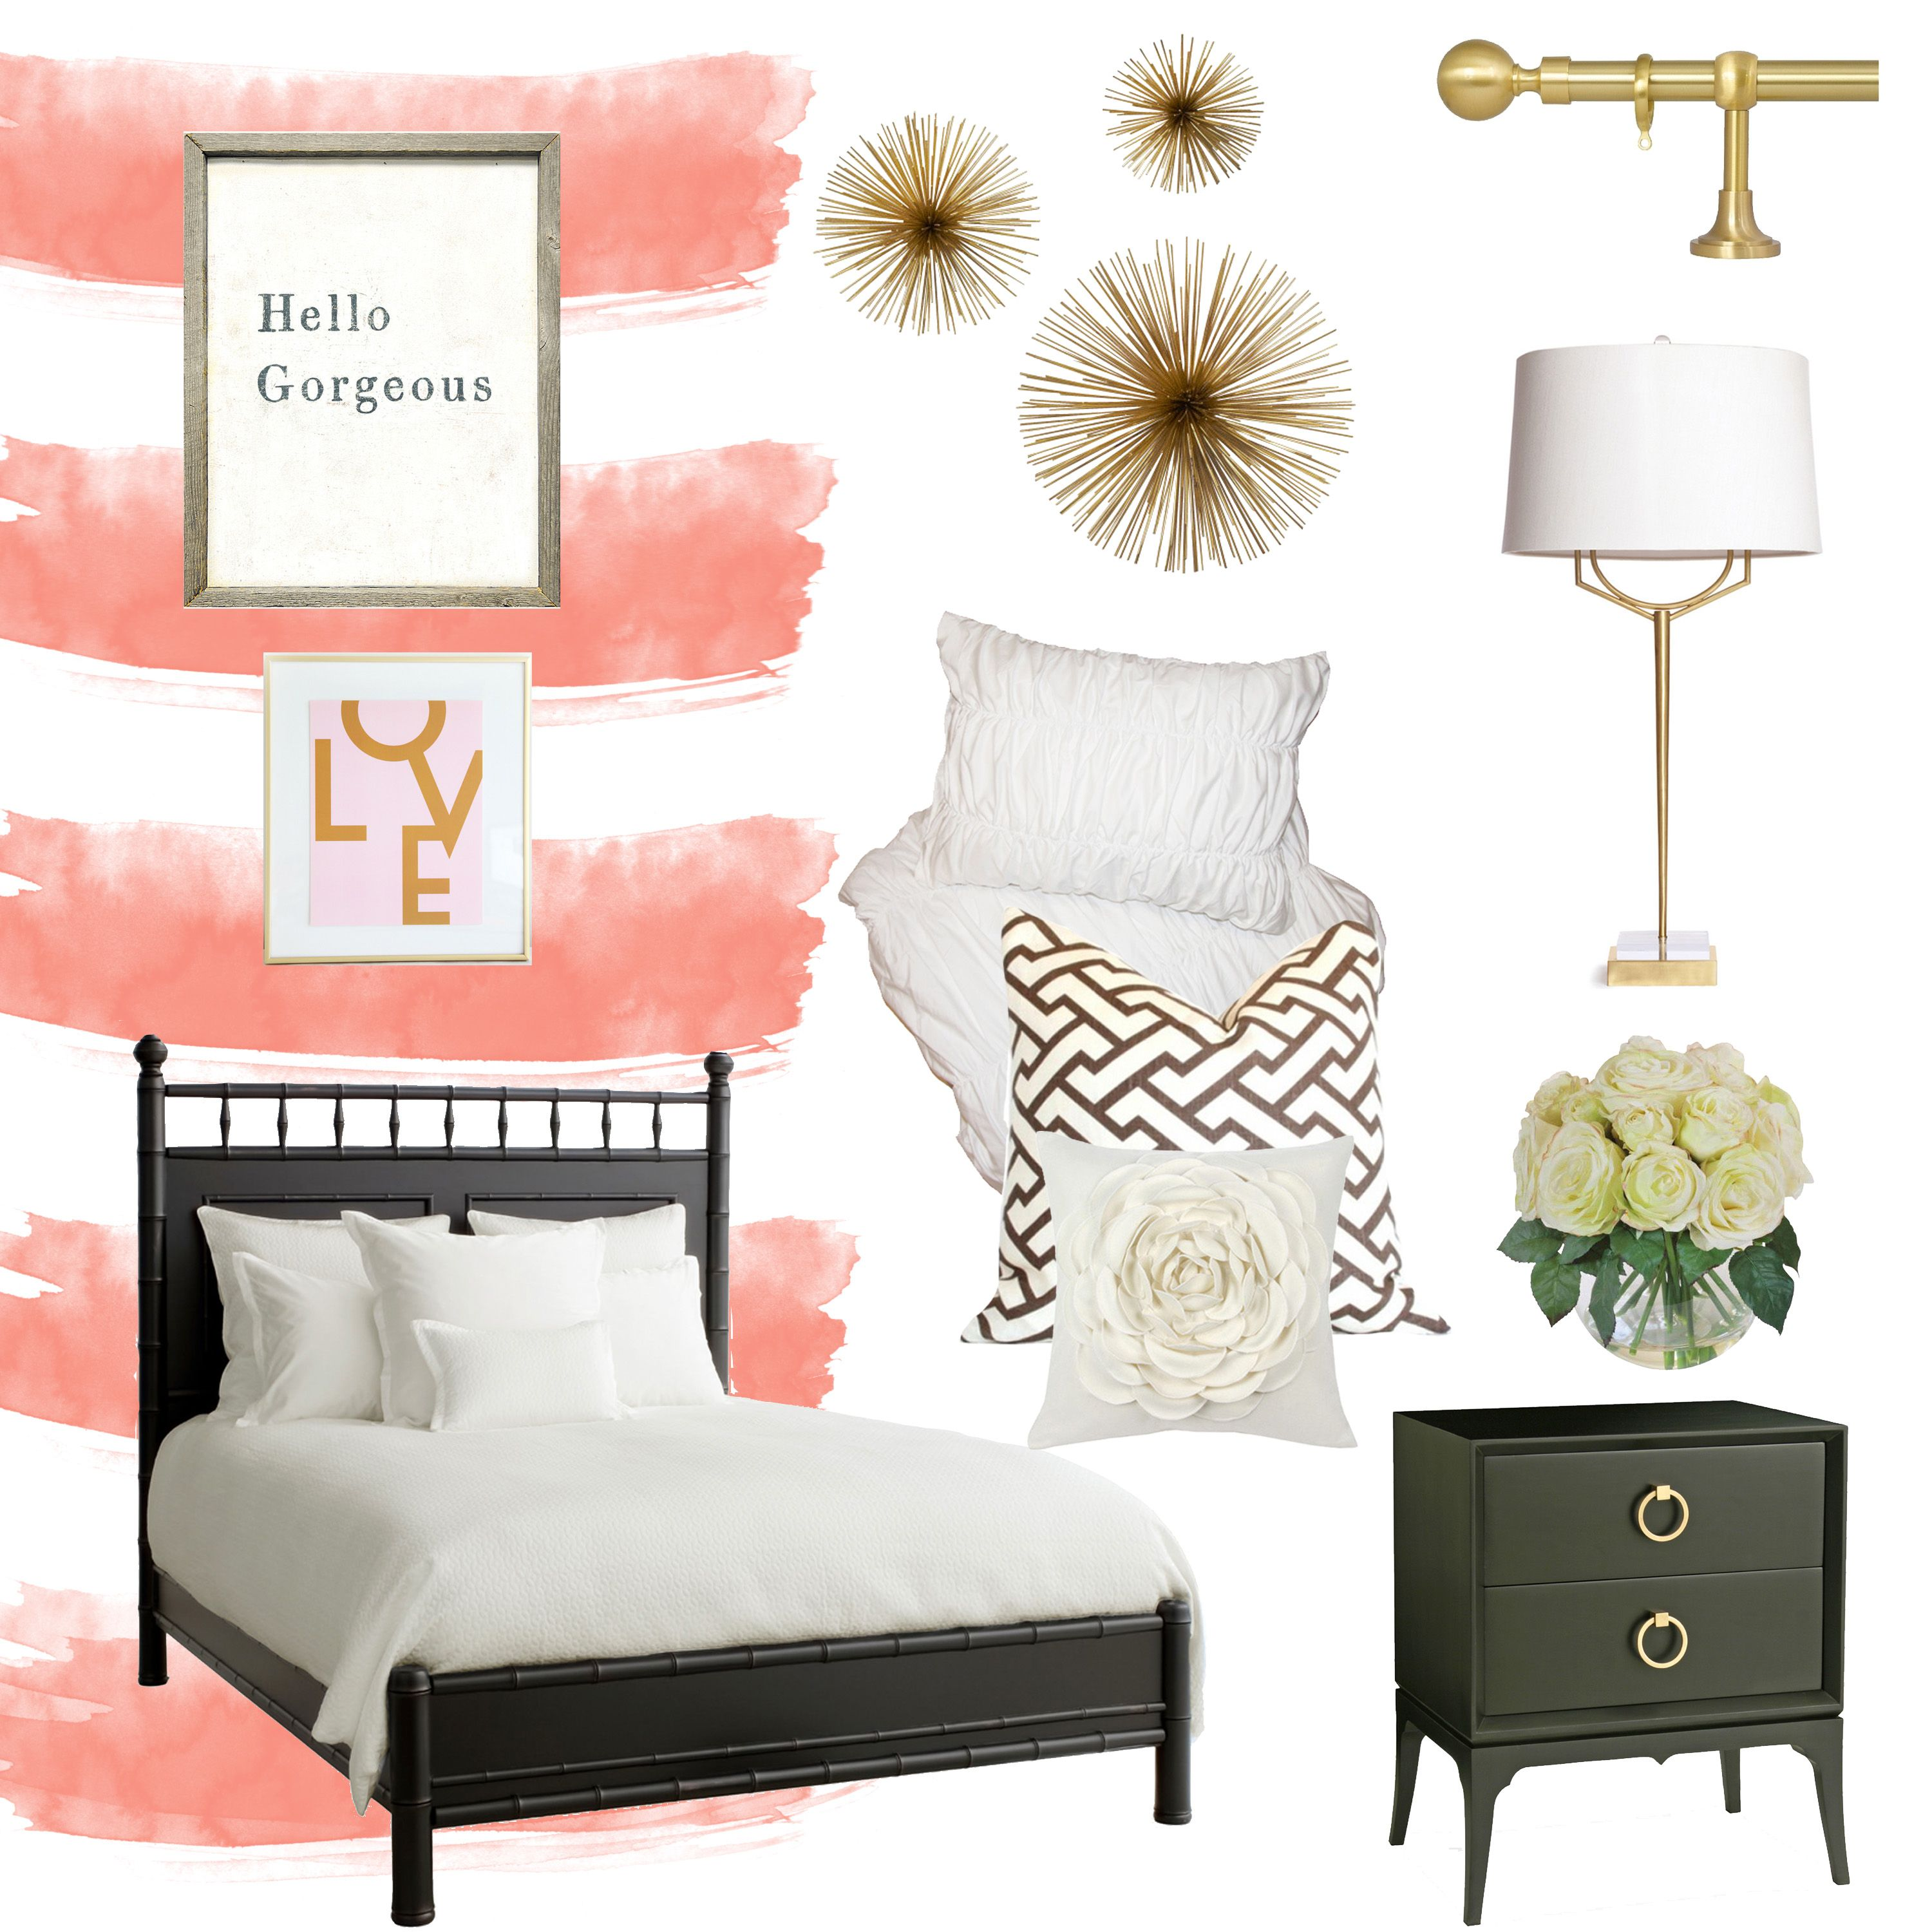 day table pinterest home set university bedroom dorm gold within in my valentine at samford artistic pink and s divine